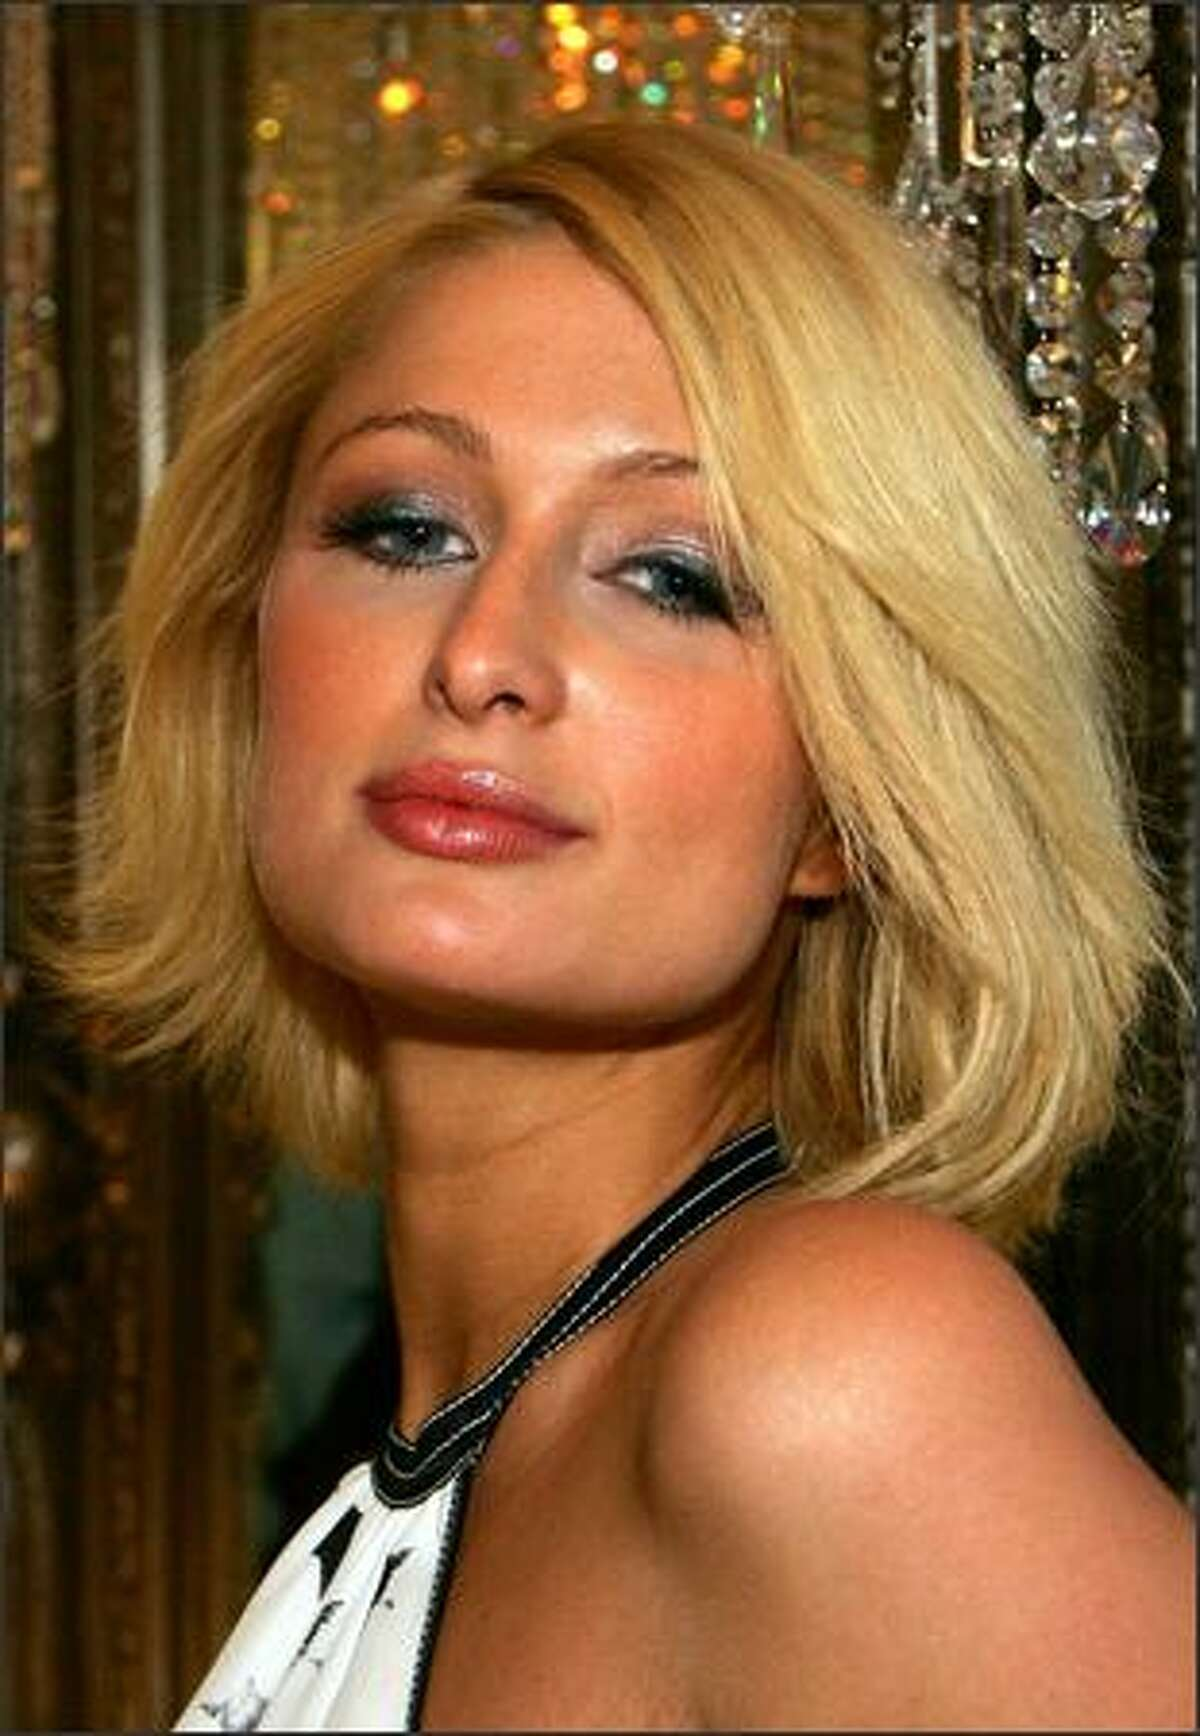 Paris Hilton attends the grand opening of Color - A Salon by Michael Boychuck at Caesars Palace in Las Vegas, Nevada.